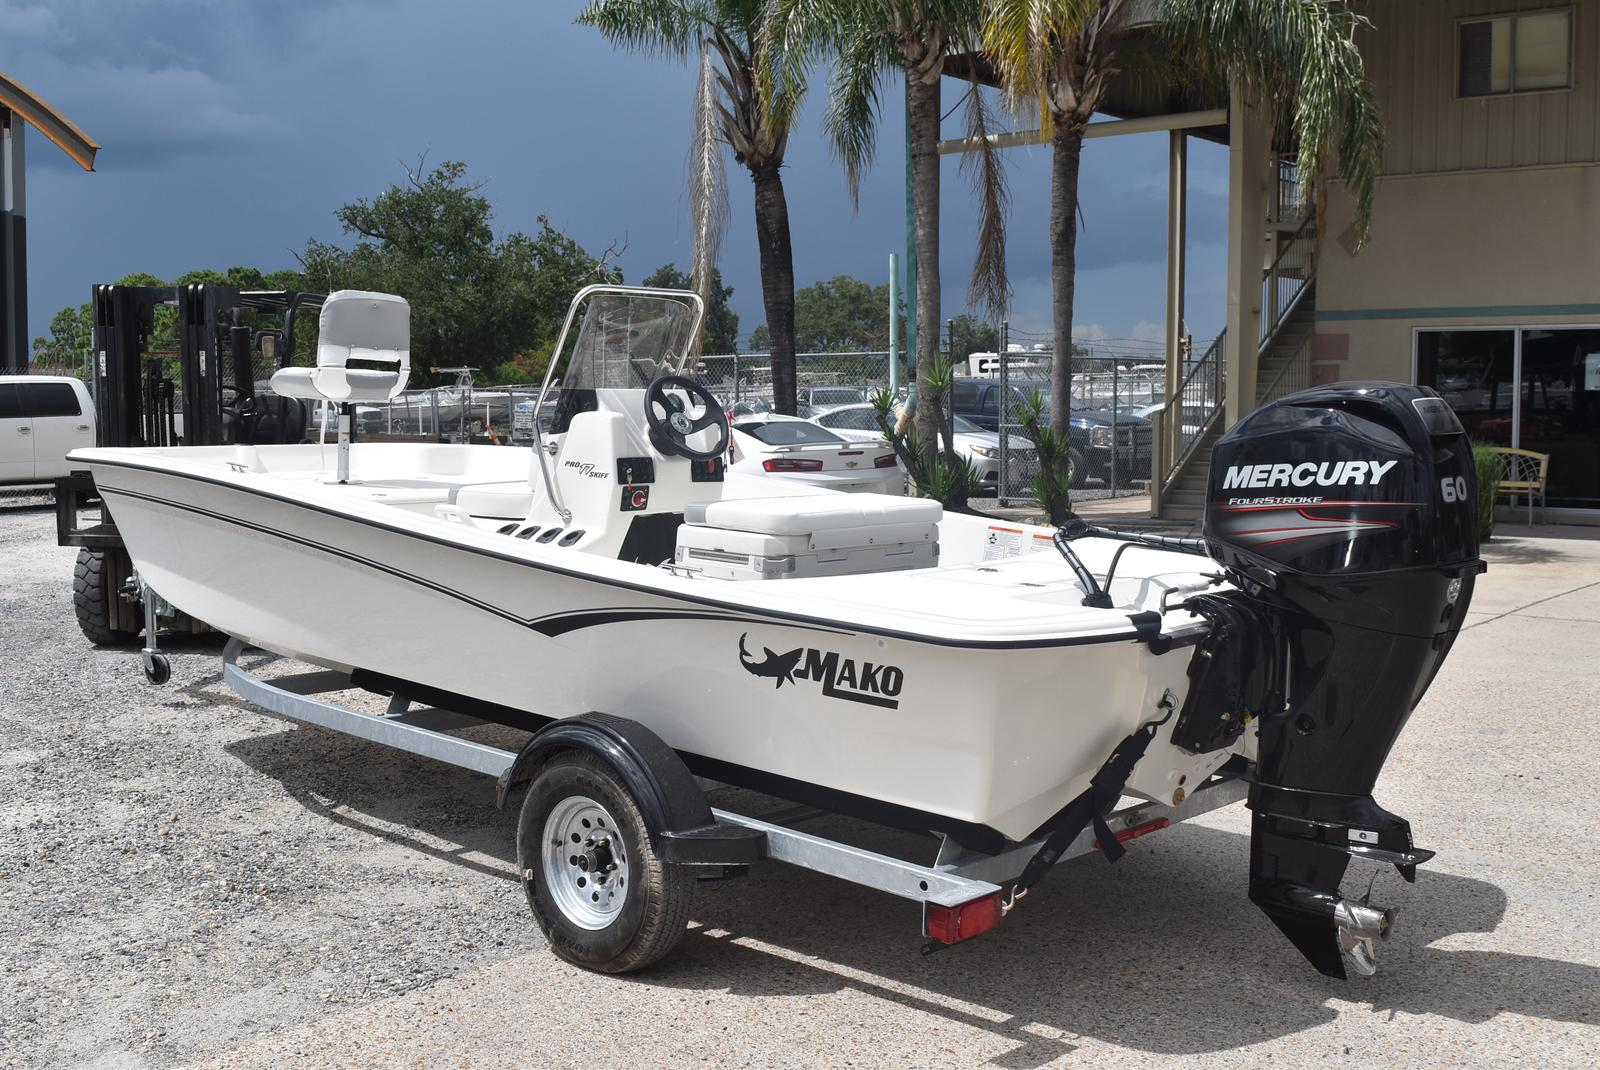 2020 Mako boat for sale, model of the boat is Pro Skiff 17, 75 ELPT & Image # 166 of 702